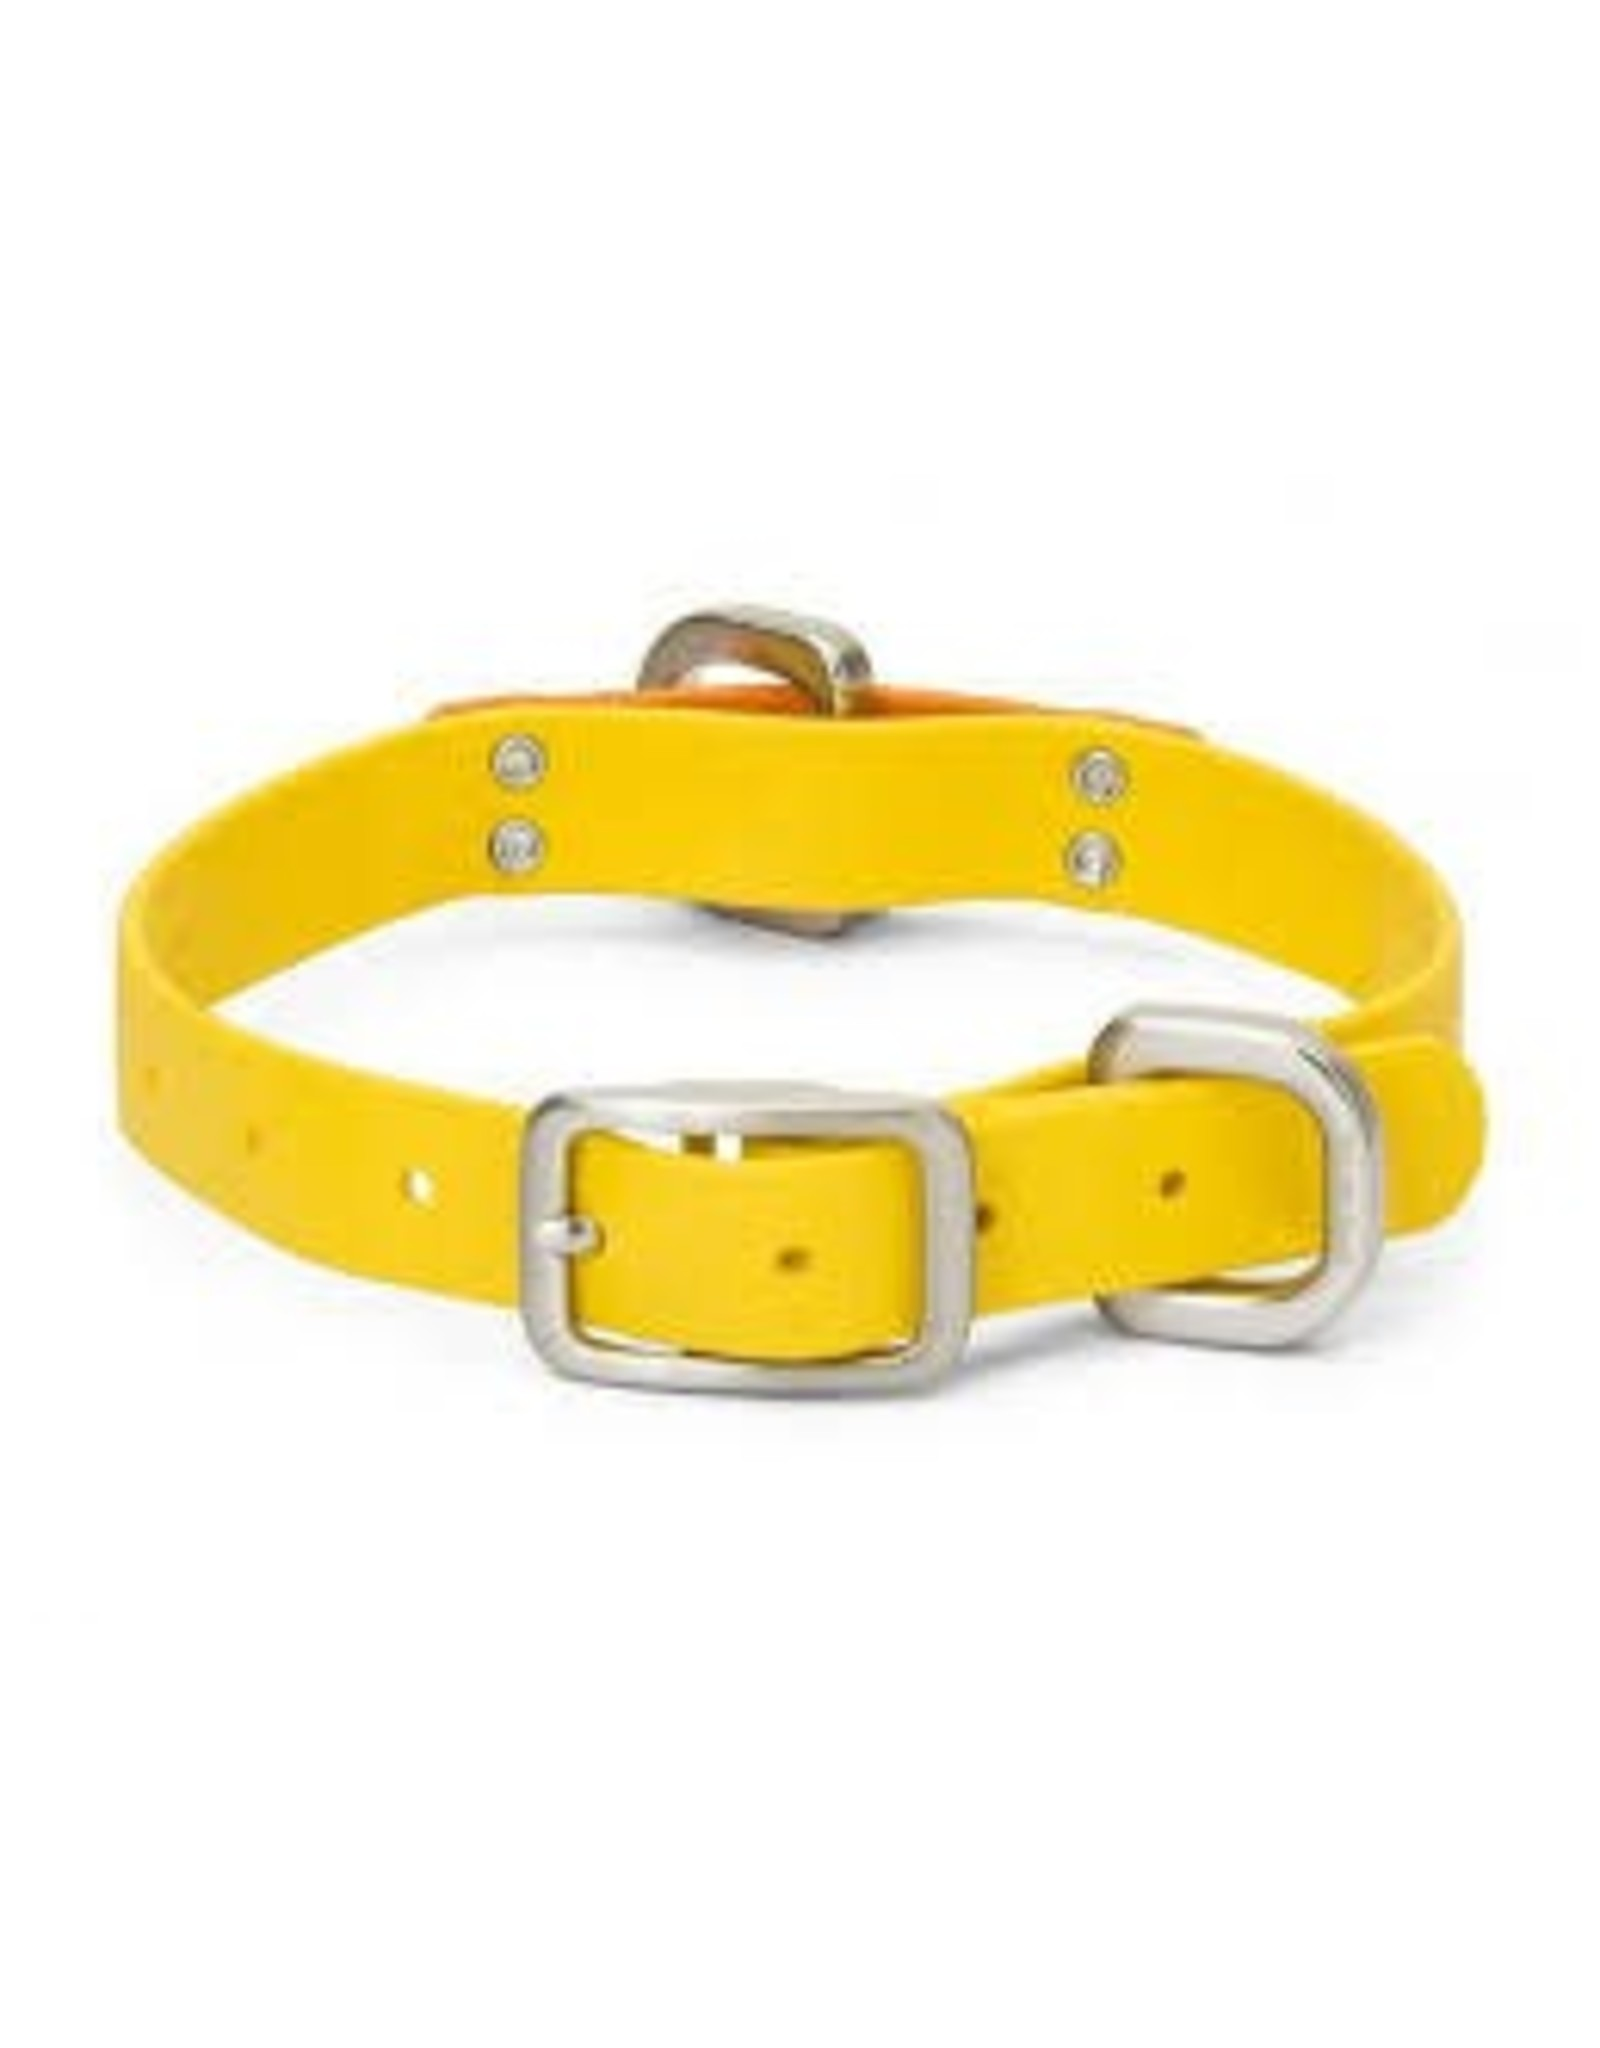 WEST PAW WEST PAW JAUNTS COLLAR LG-YELLOW